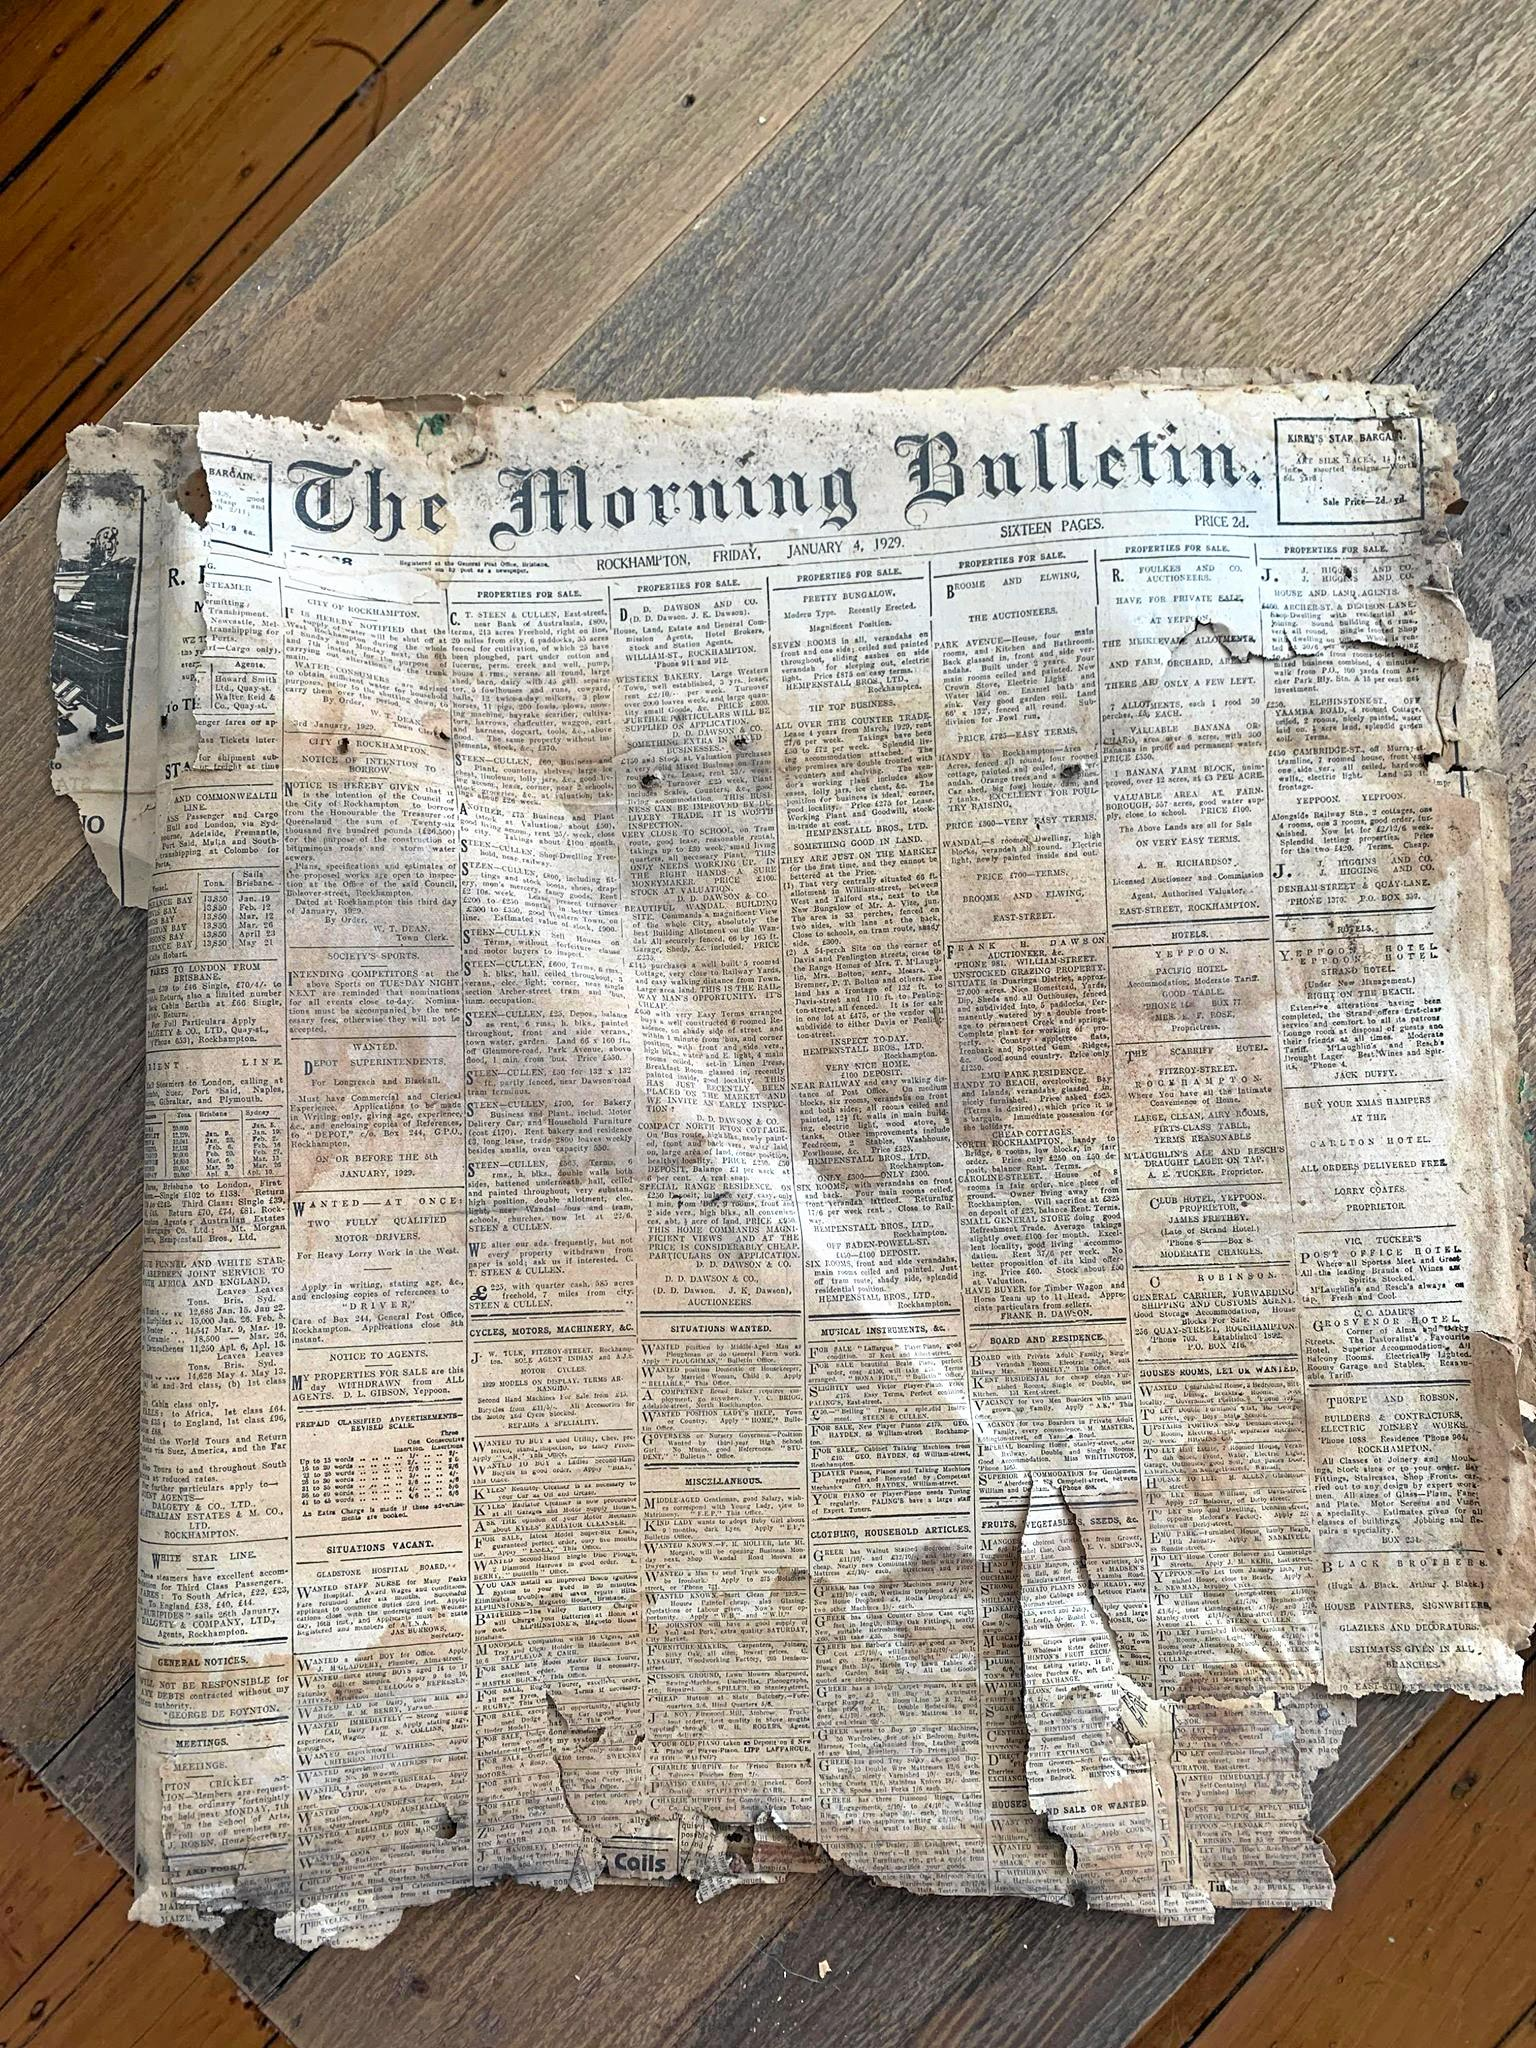 A 1929 copy of The Morning Bulletin was found this week under a bathroom cupboard.